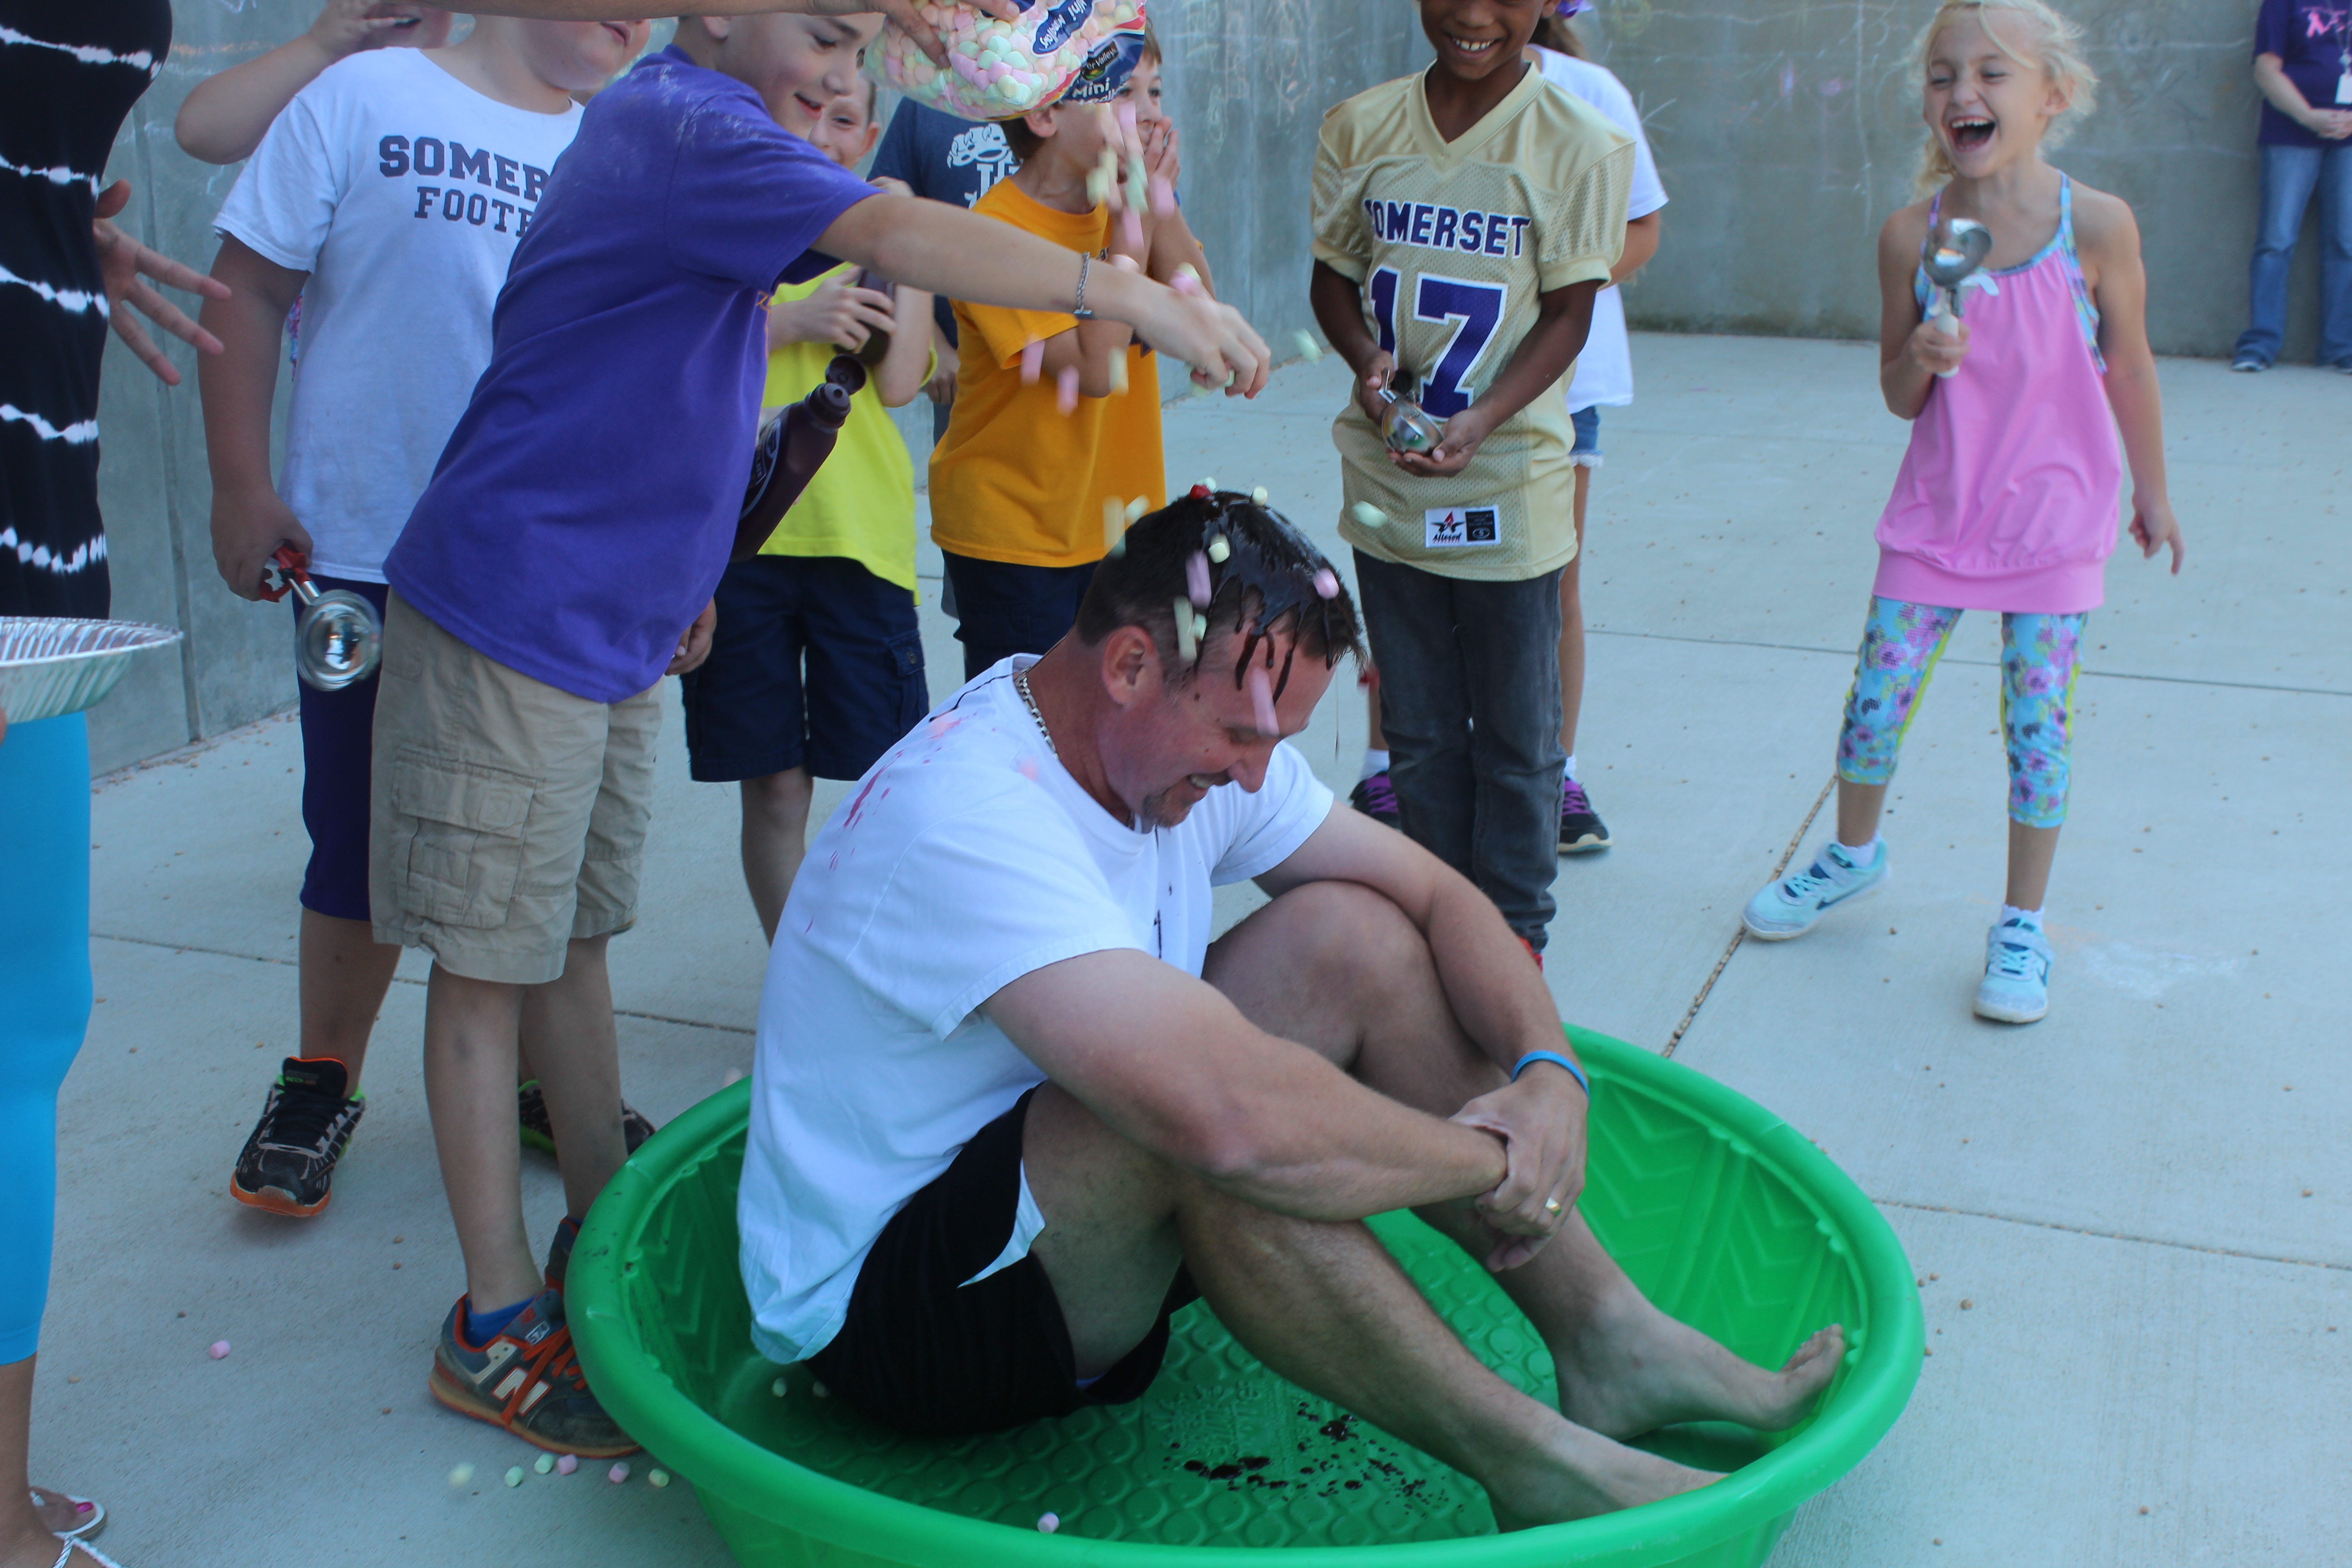 Mr. Reynolds becomes a Human Ice Cream Sundae!